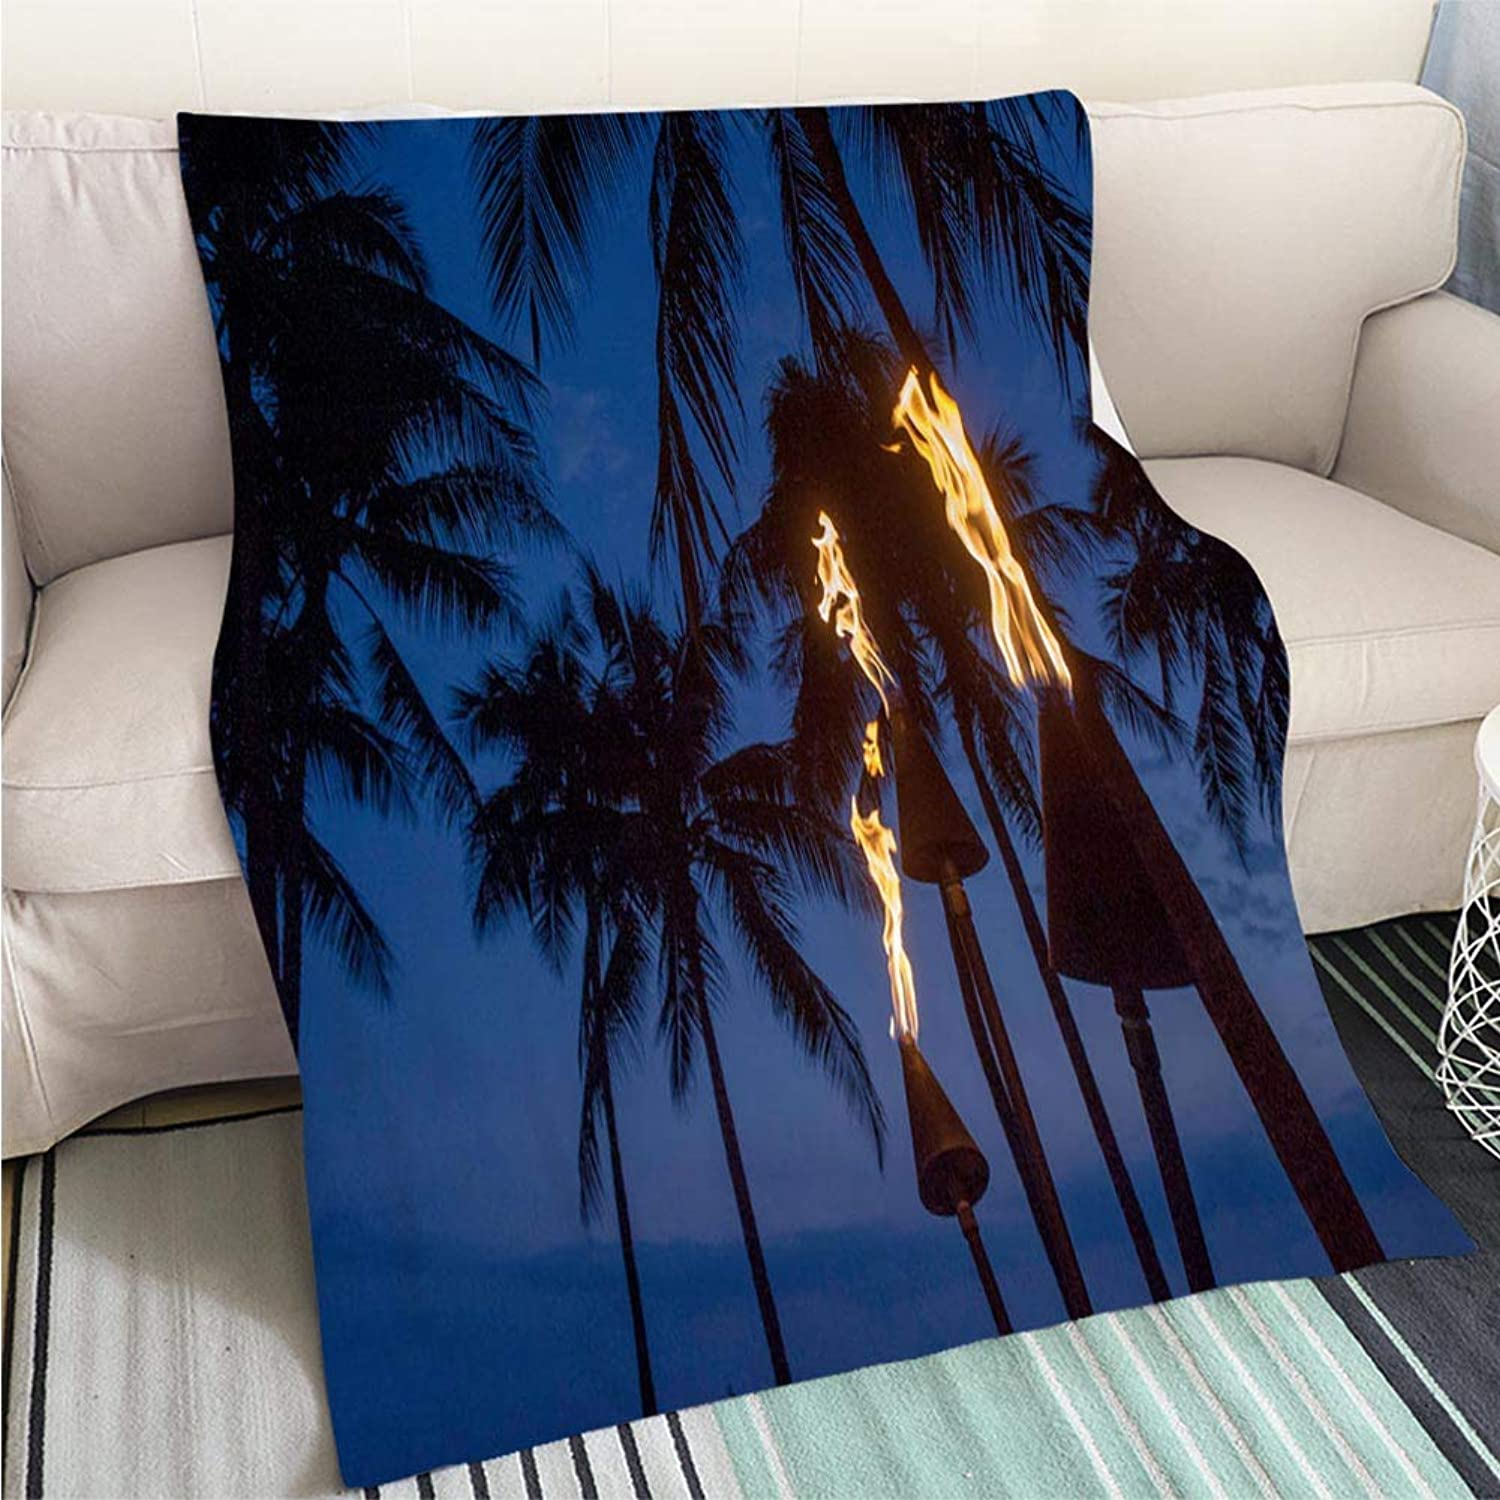 Comforter Multicolor Bed or Couch Torch Lighting in Waikiki at Dusk Perfect for Couch Sofa or Bed Cool Quilt